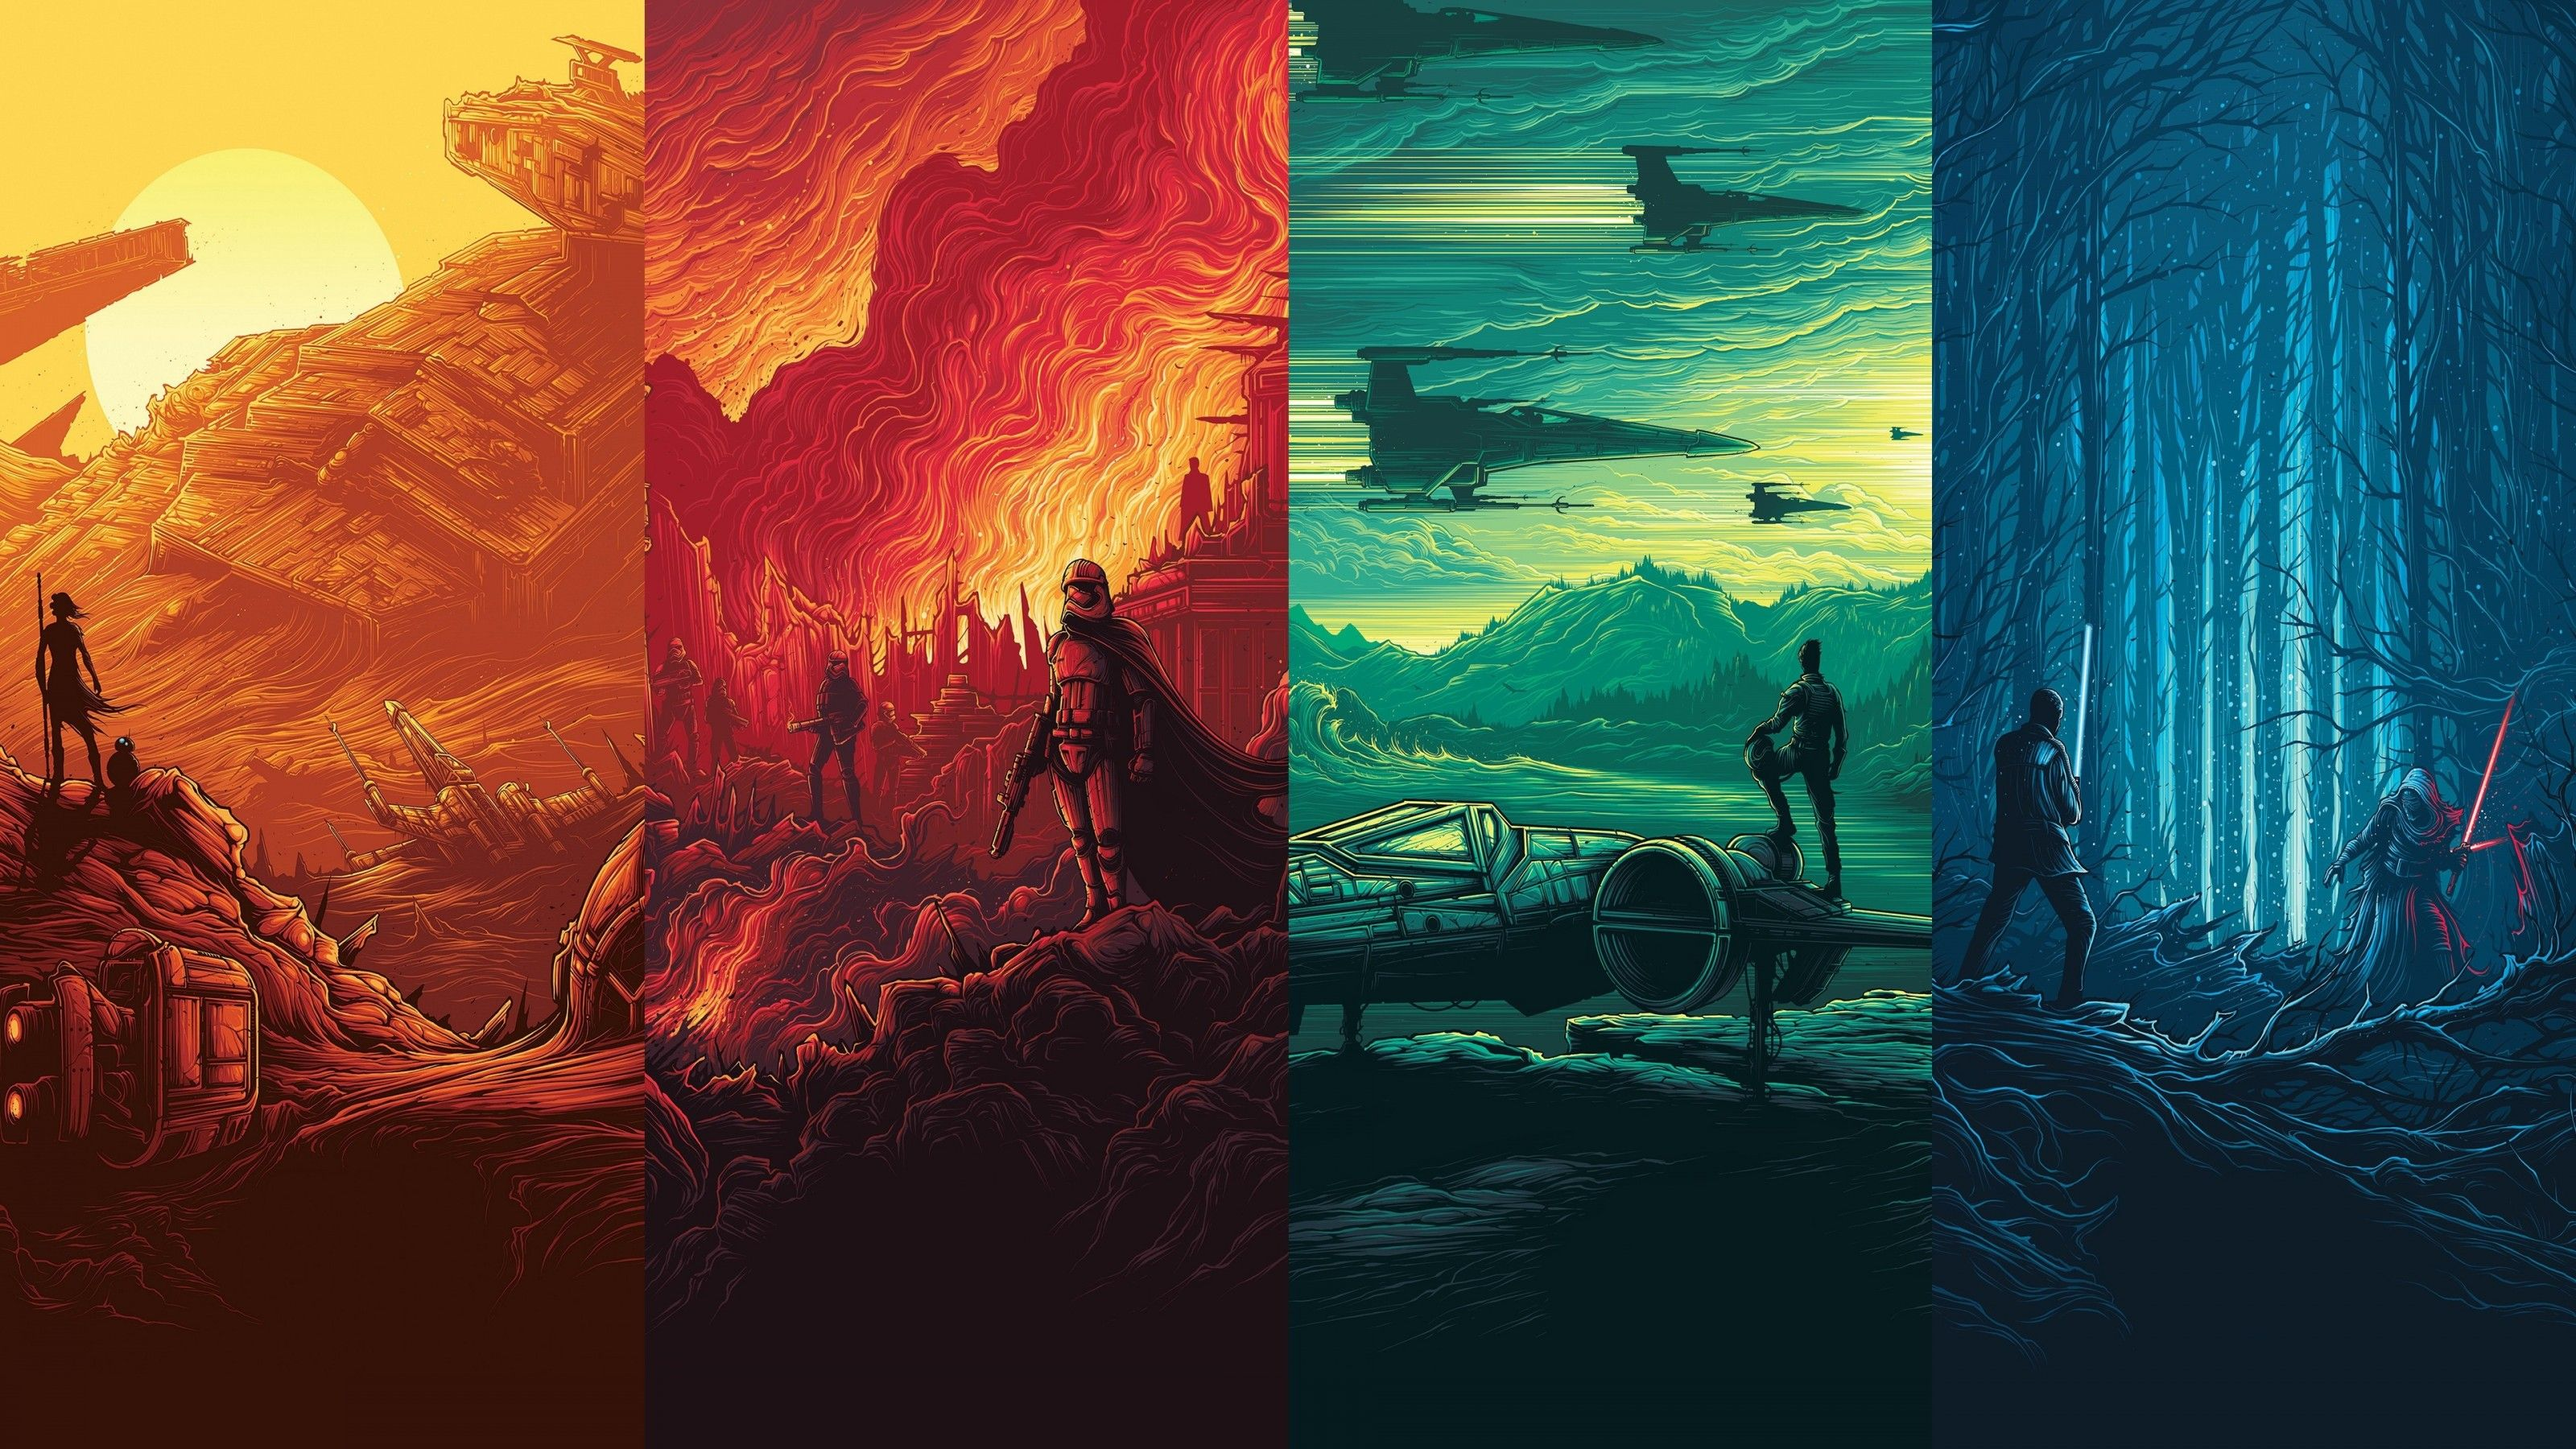 3200x1800 Wallpapers Top Free 3200x1800 Backgrounds